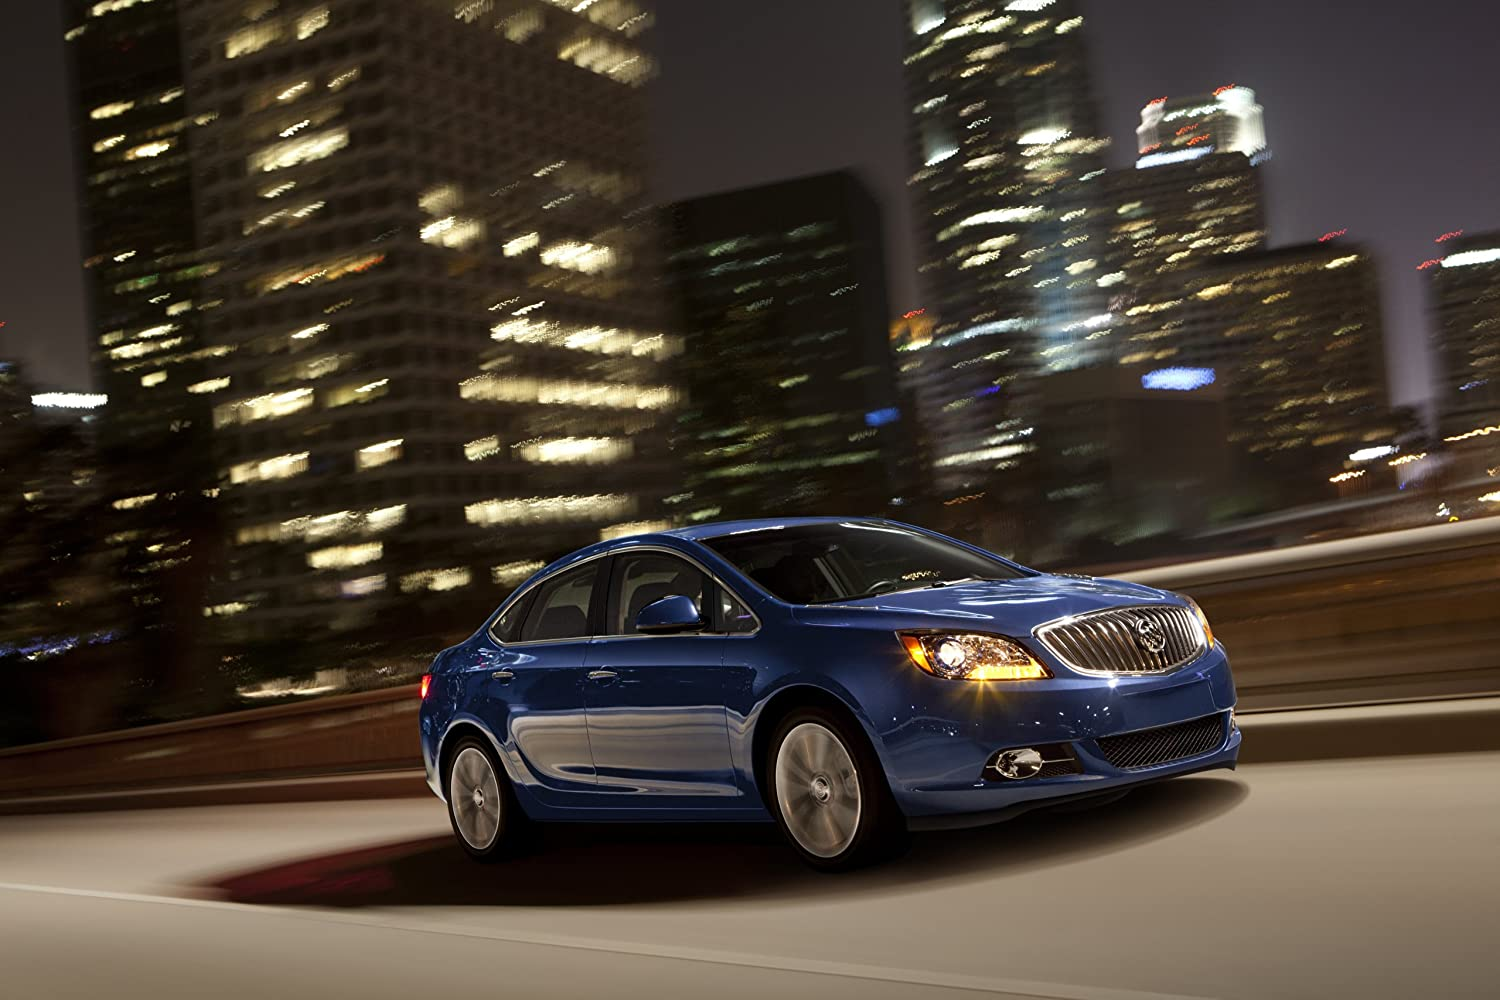 Amazon.com: Buick Verano Turbo (2013) Car Art Poster Print on 10 mil Archival Paper Blue Front Side Night Motion View 24